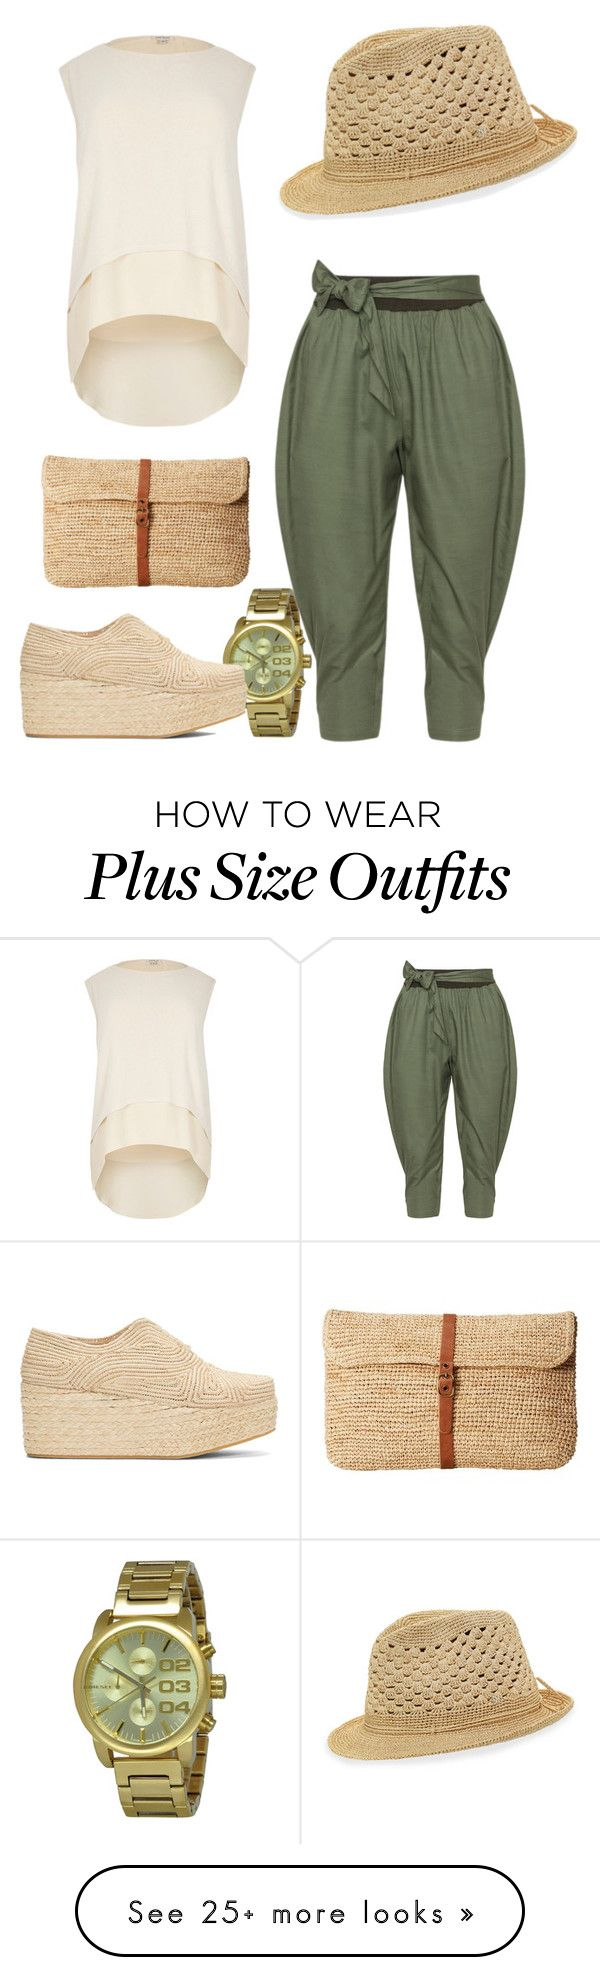 """""""Untitled #136"""" by twisted1beauty on Polyvore featuring Diesel, Isolde Roth, River Island, Robert Clergerie, Hat Attack and Helen Kaminski"""